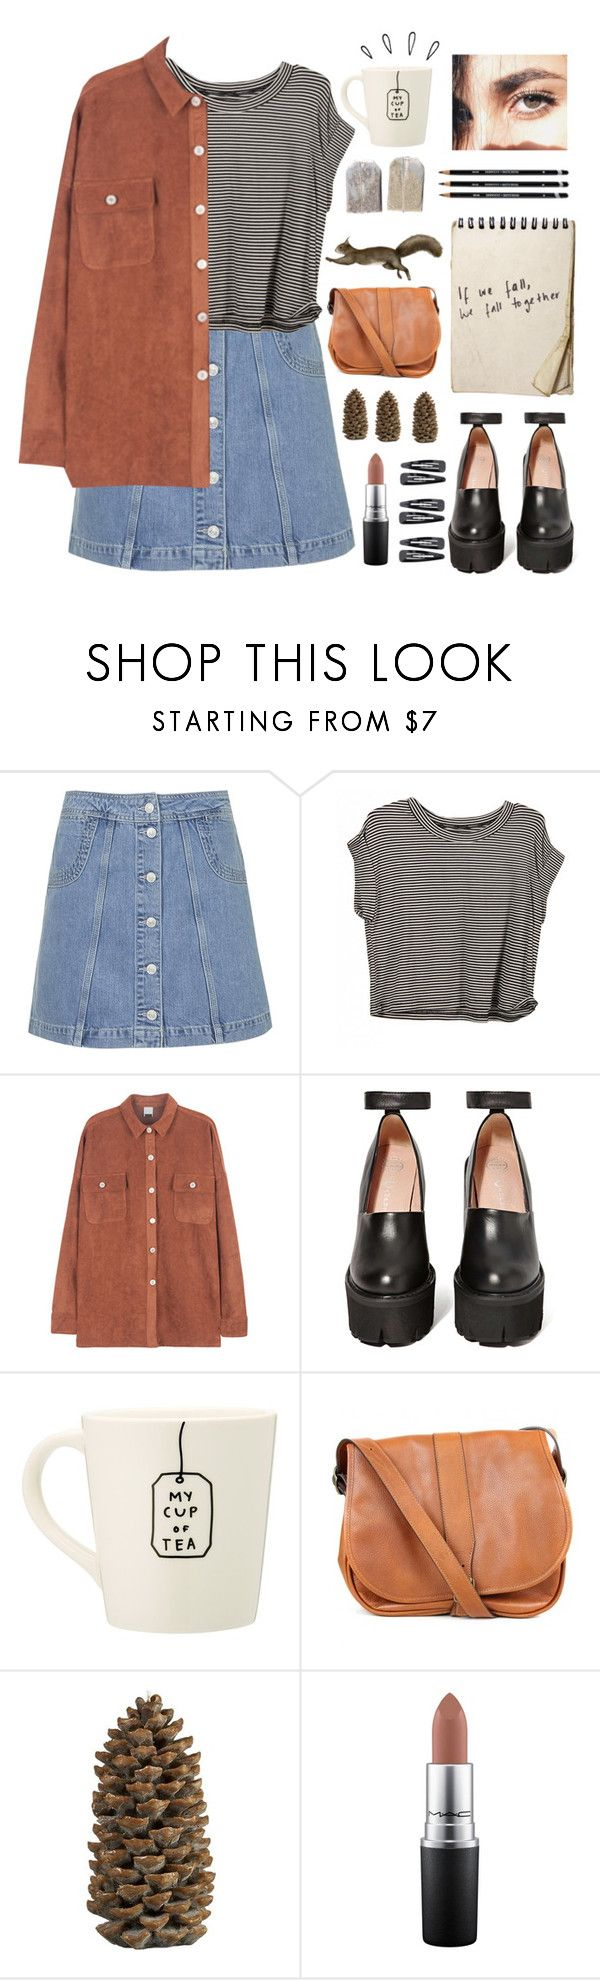 """""""Fall"""" by babemagnet00 ❤ liked on Polyvore featuring Topshop, Jeffrey Campbell, Old Navy, Barbour, Crate and Barrel, MAC Cosmetics and Forever 21"""